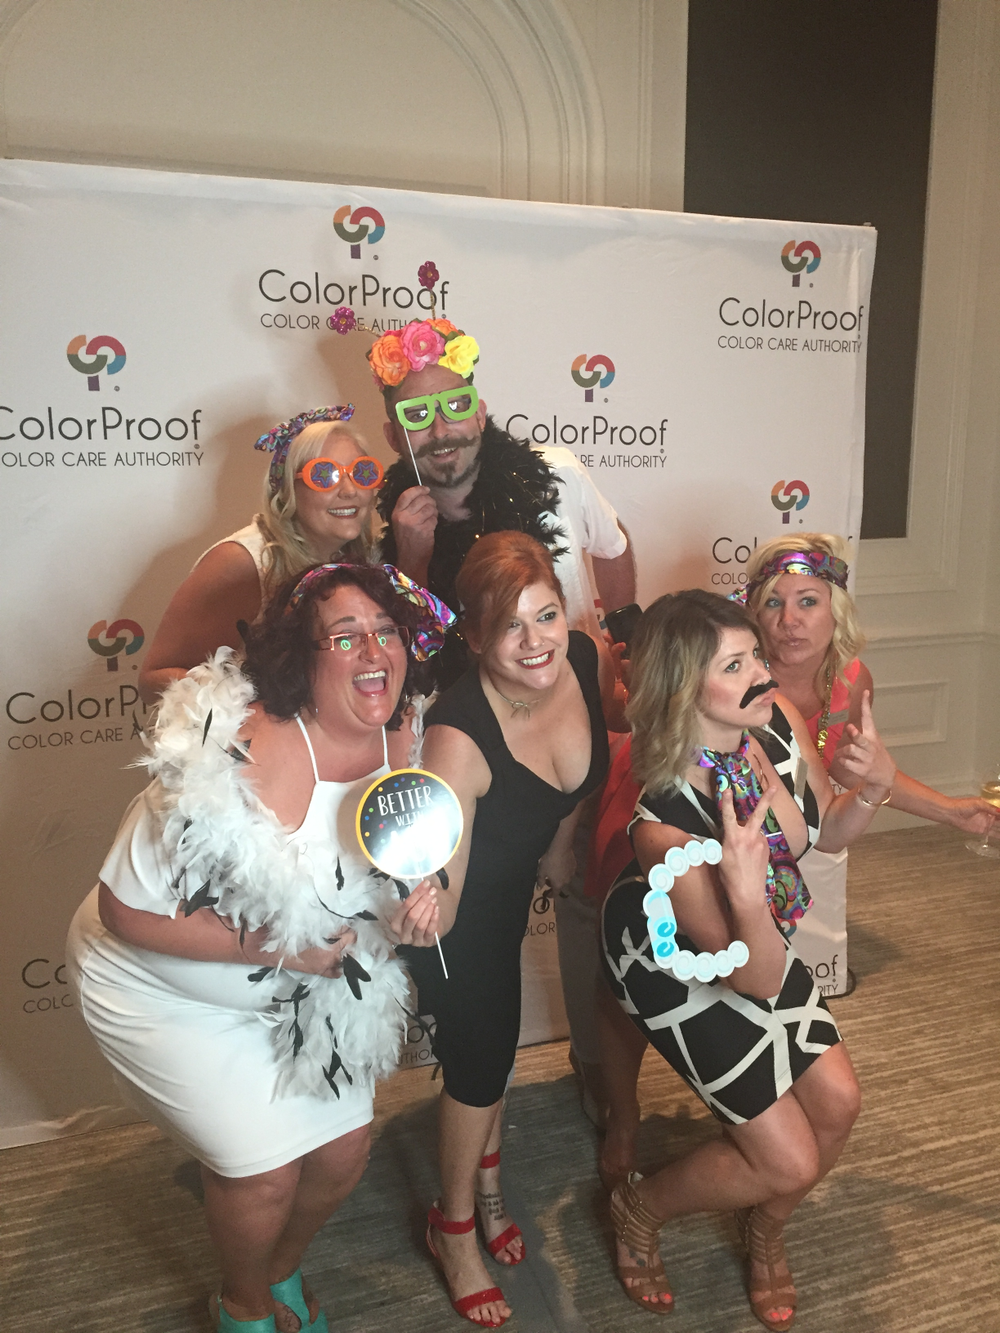 <p><em>The ColorProof Cocktail party kicks off Cosmoprof North America.  This year, ColorProof kicked it up a</em> <em>notch, offering photo booth fun, strolling magicians, caricature artists and, as per usual, food, drink and merry-making.</em></p>